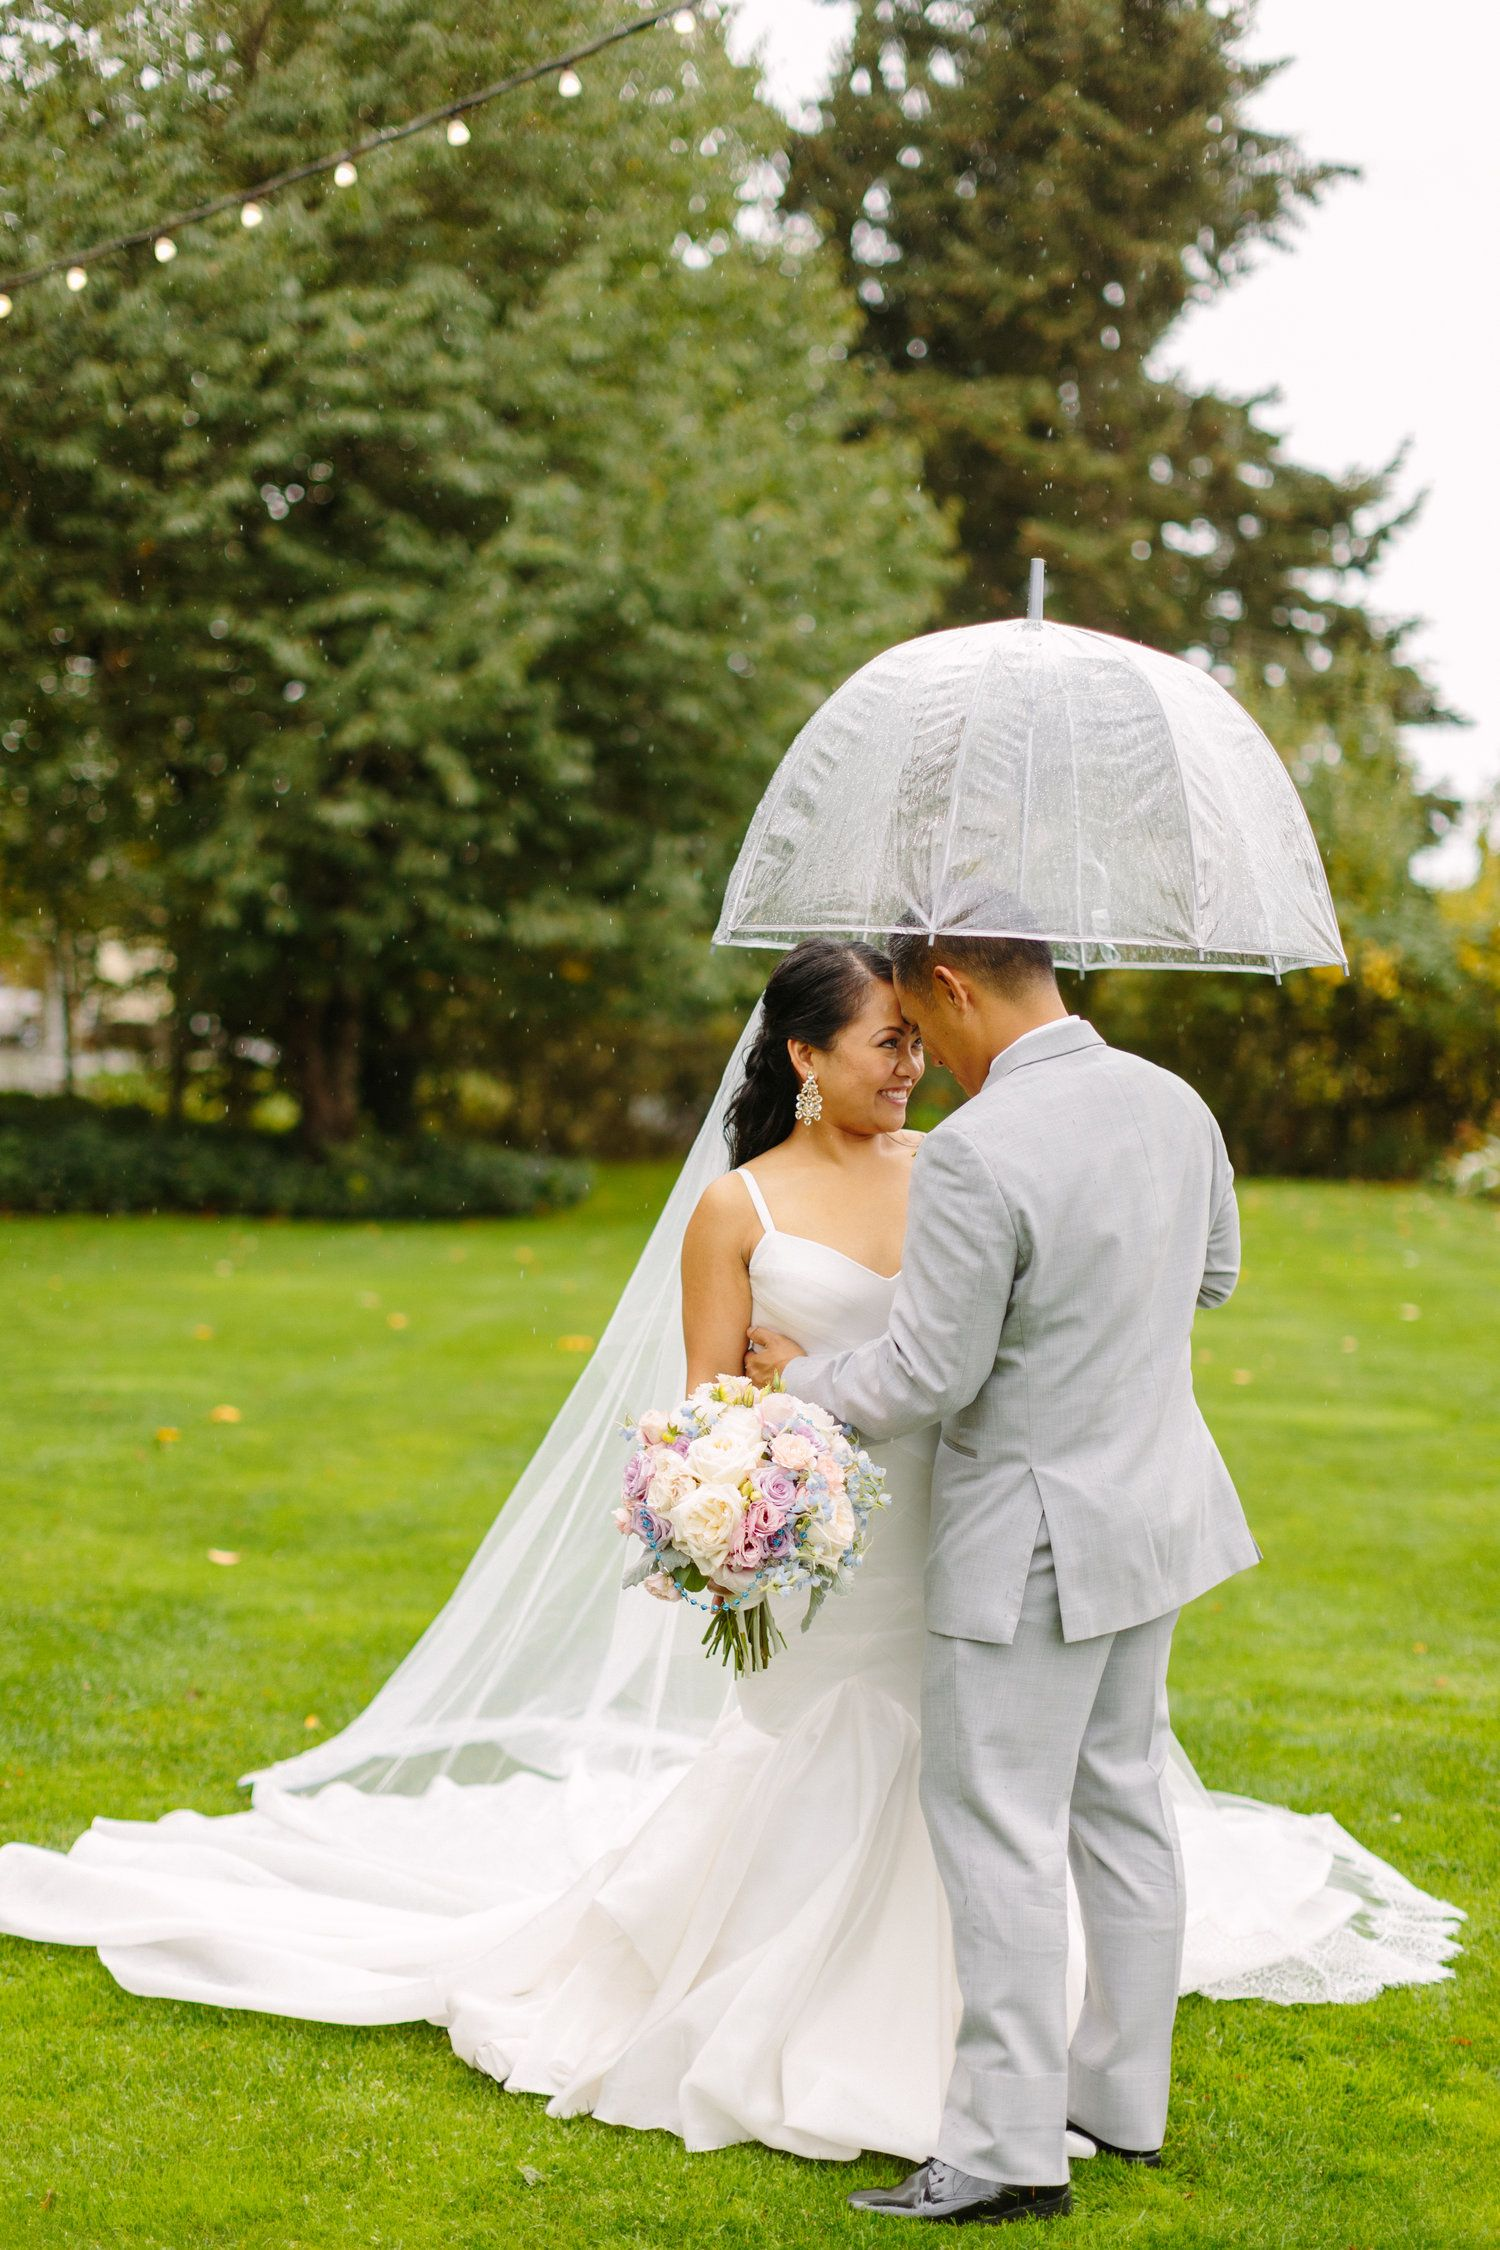 Gown: Carol Hannah Pherousa (simplified). Filagree Garden Veil | Photography: Courtney Bowlden | Venue: Kelley Farm